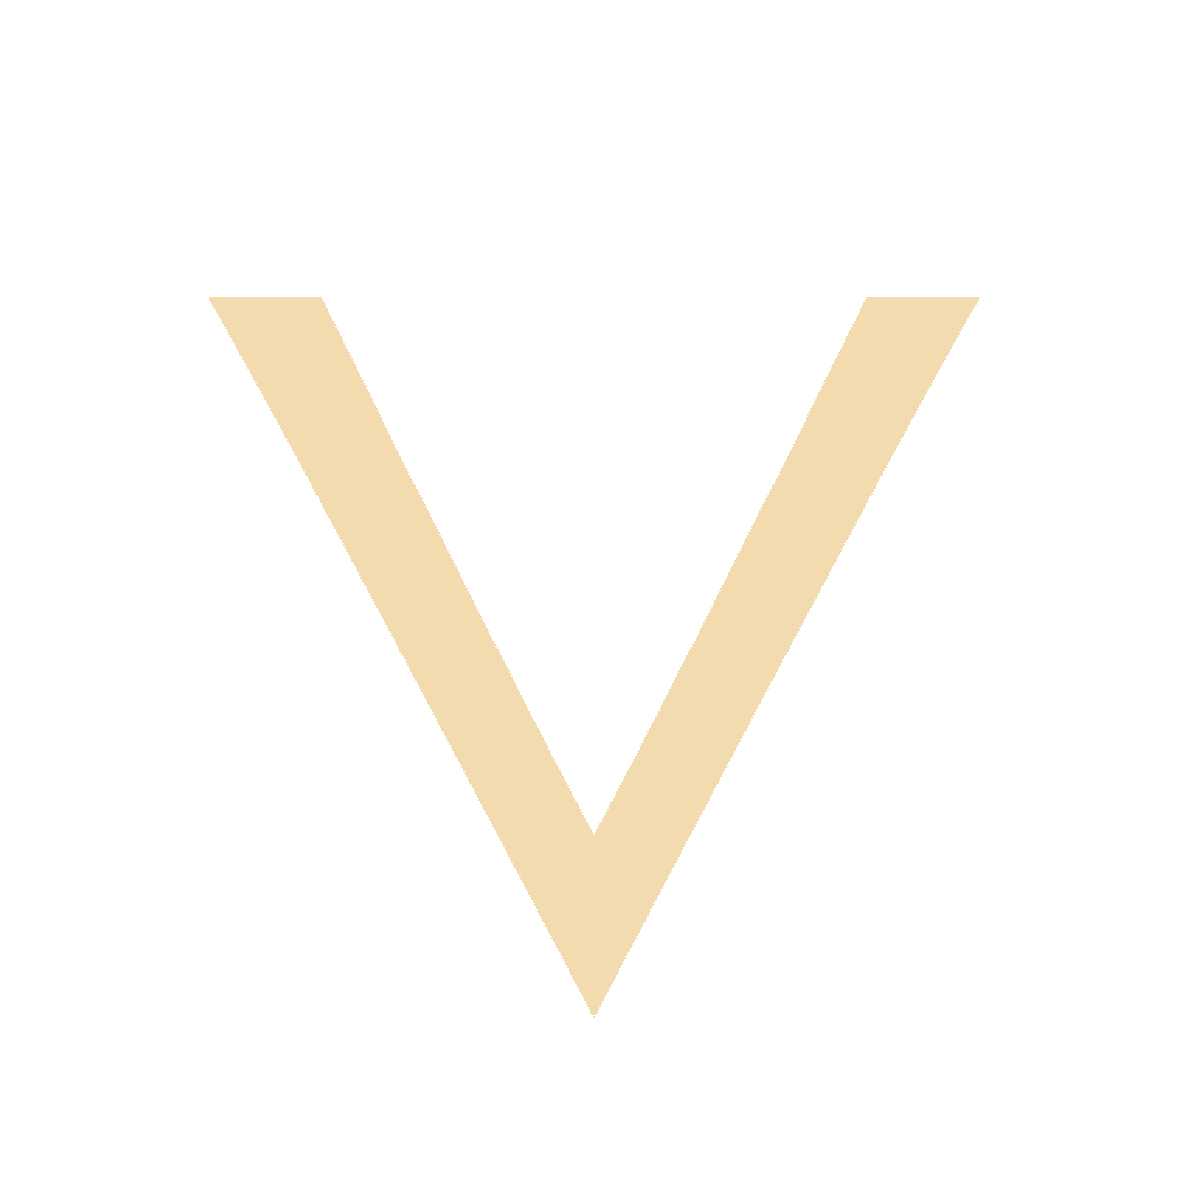 All About V